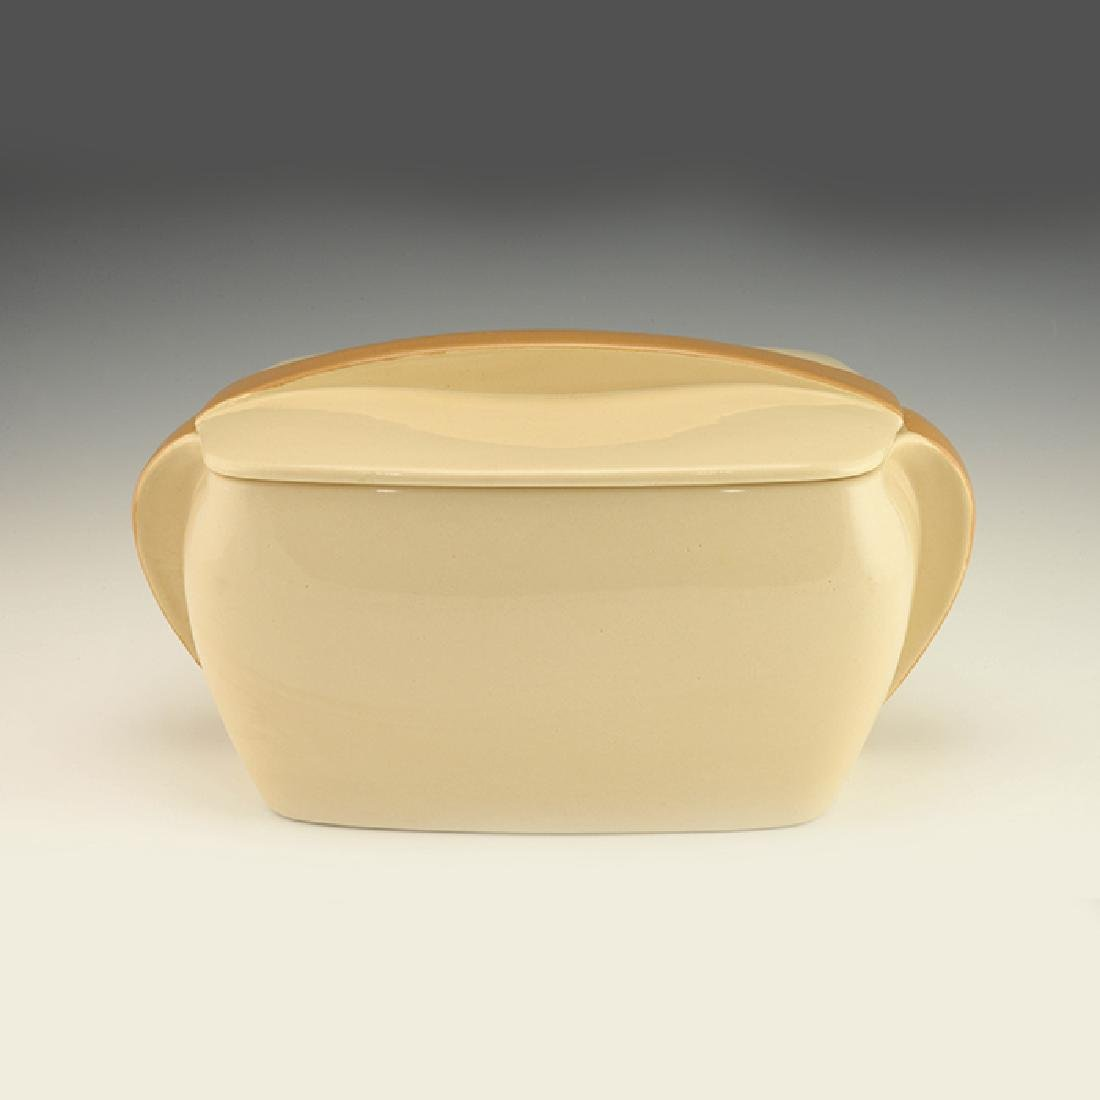 Eva Zeisel, a Stratoware Casserole or Vegetable Dish